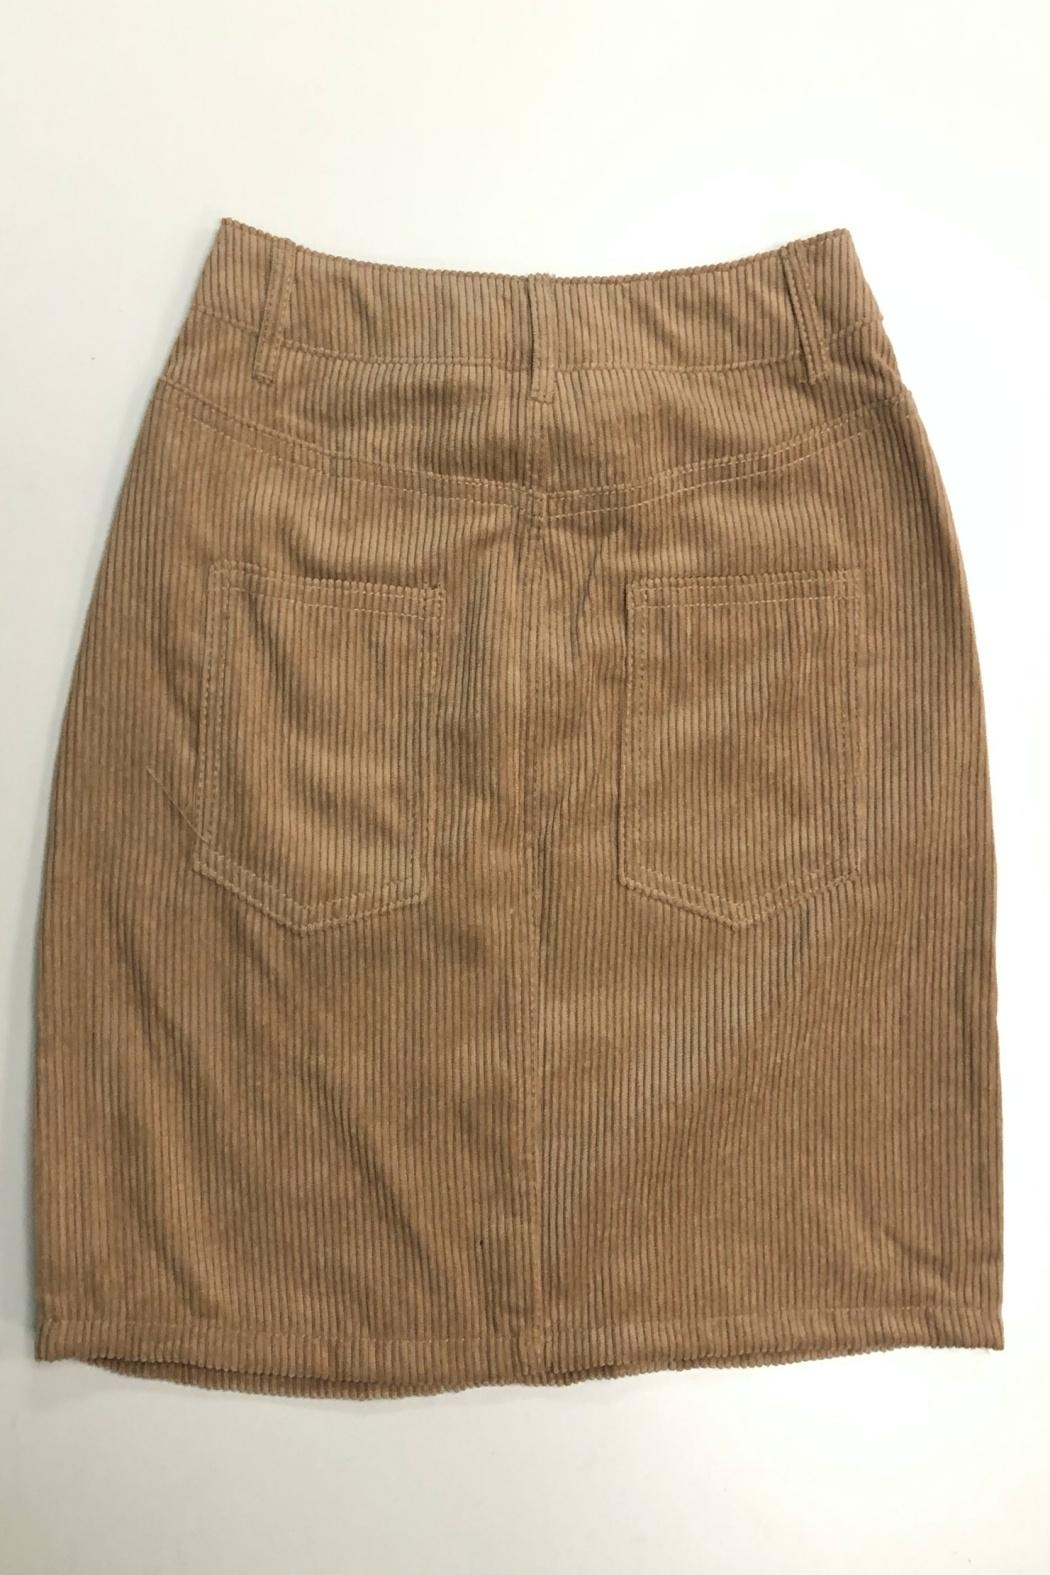 ambiance apparel Corduroy Skirt - Main Image